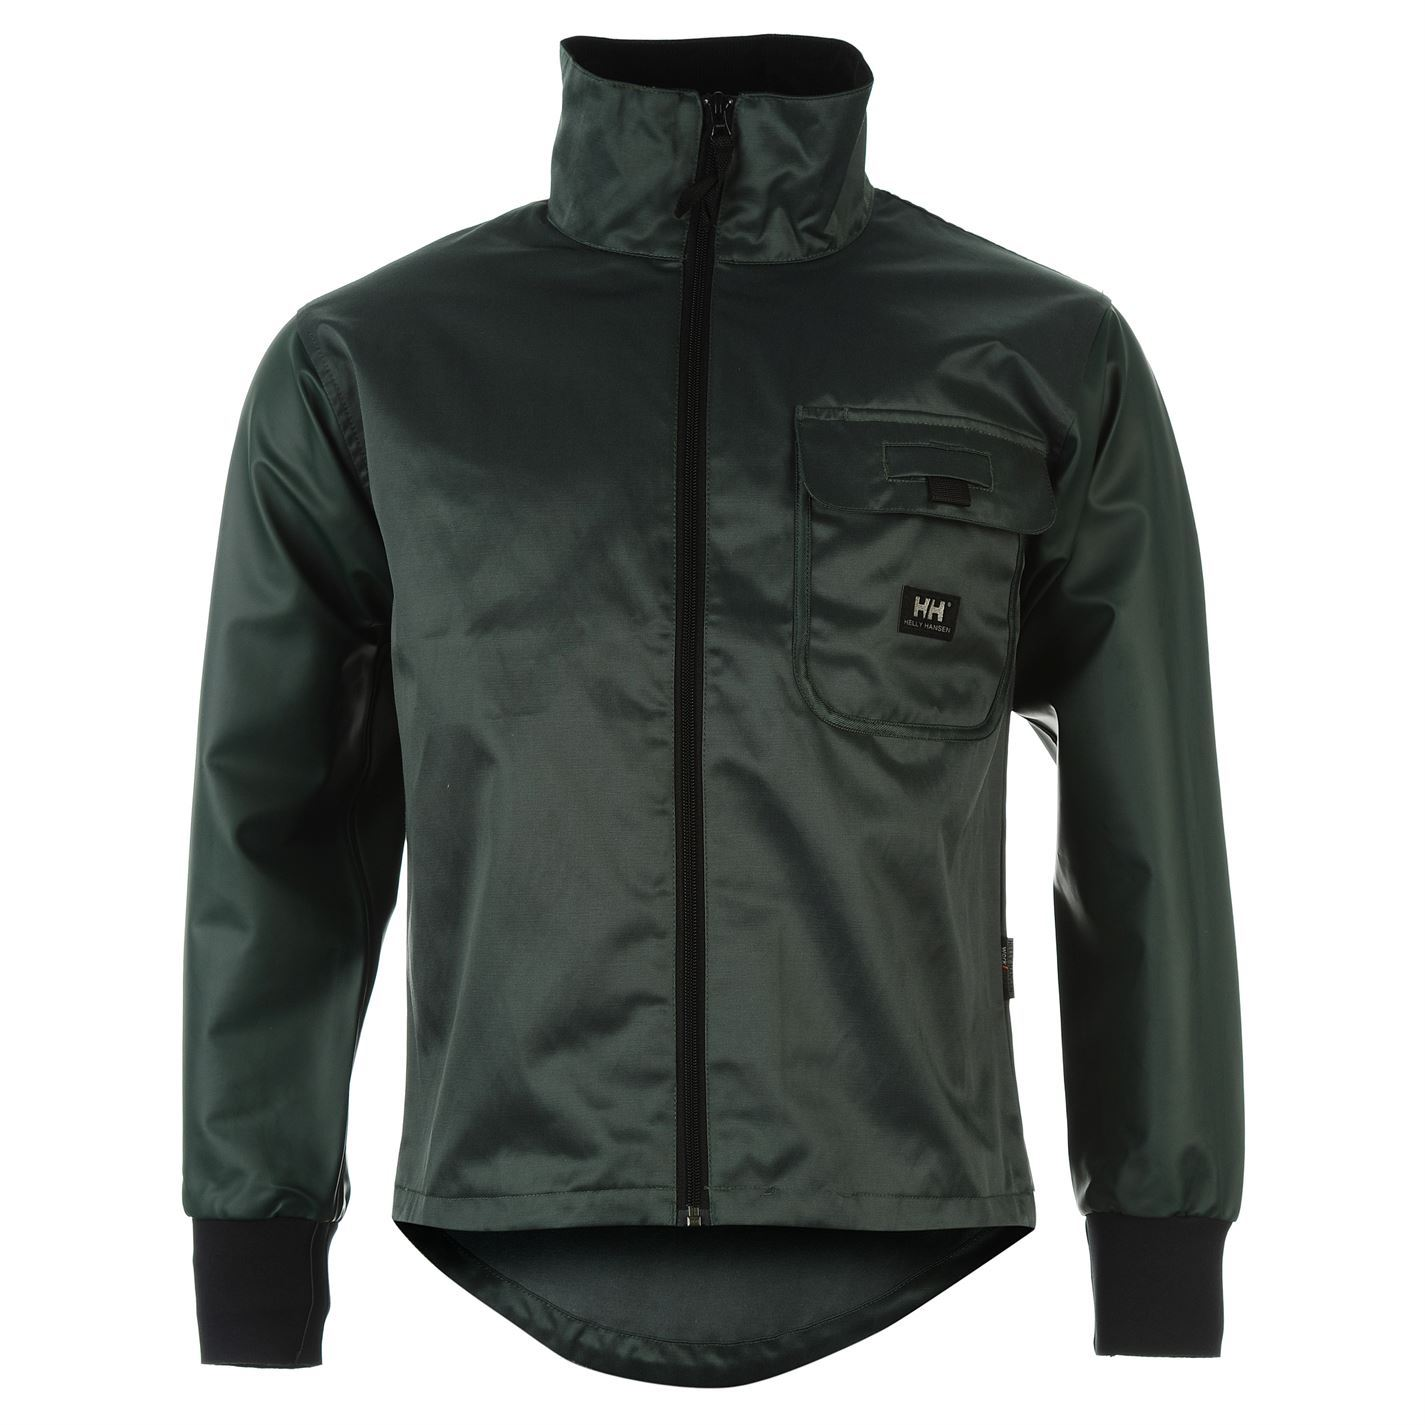 helly hansen mens seaford jacket full zip durable workwear outerwear ebay. Black Bedroom Furniture Sets. Home Design Ideas